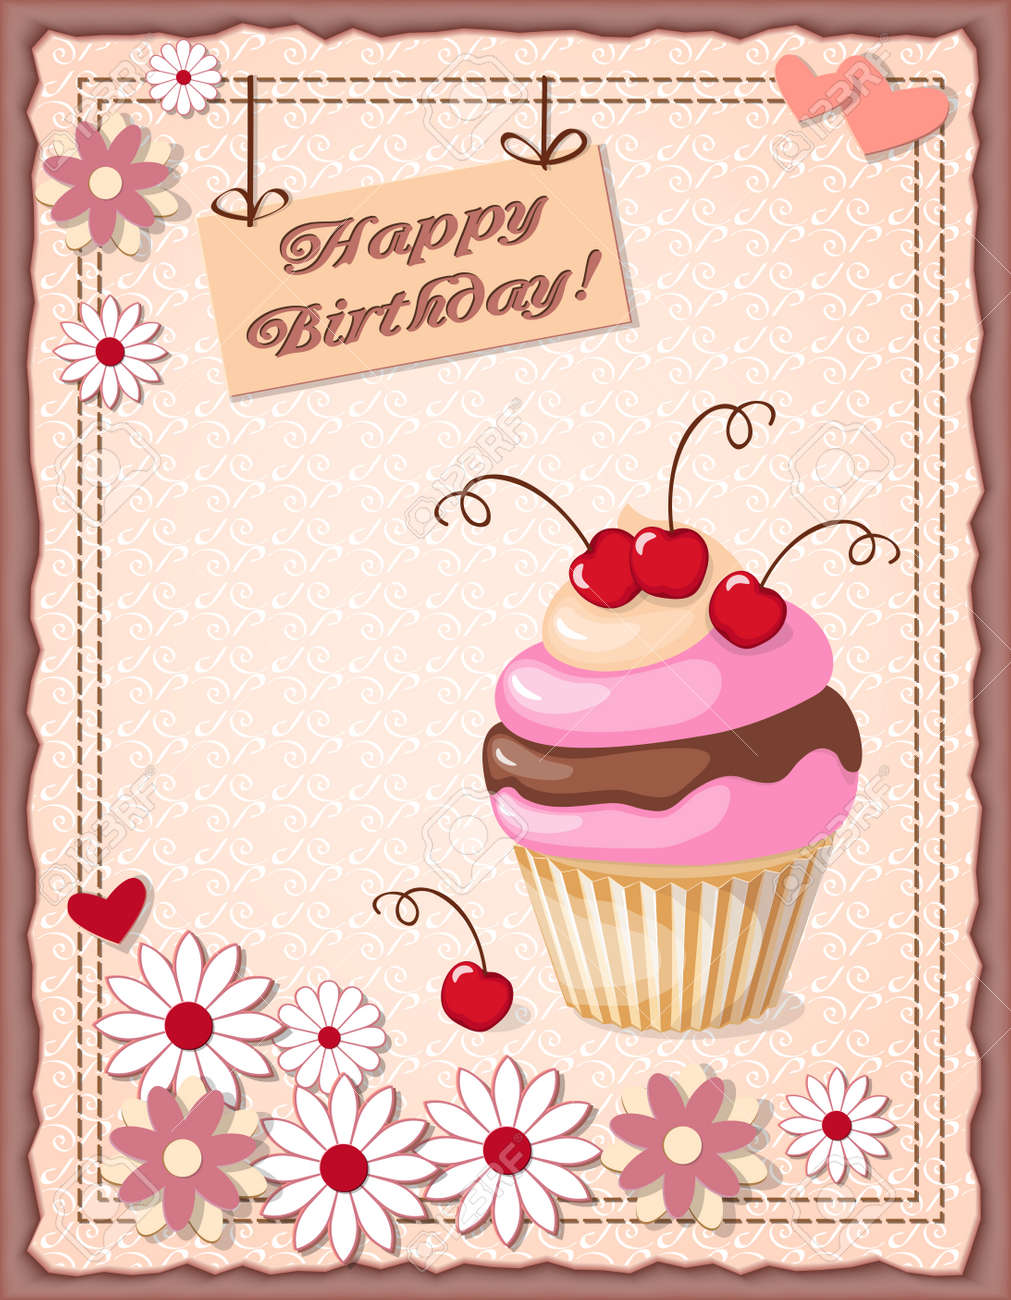 Festive Colorful Scrapbooking Card With Text Happy Birthday Cake Cherry And Hearts On The